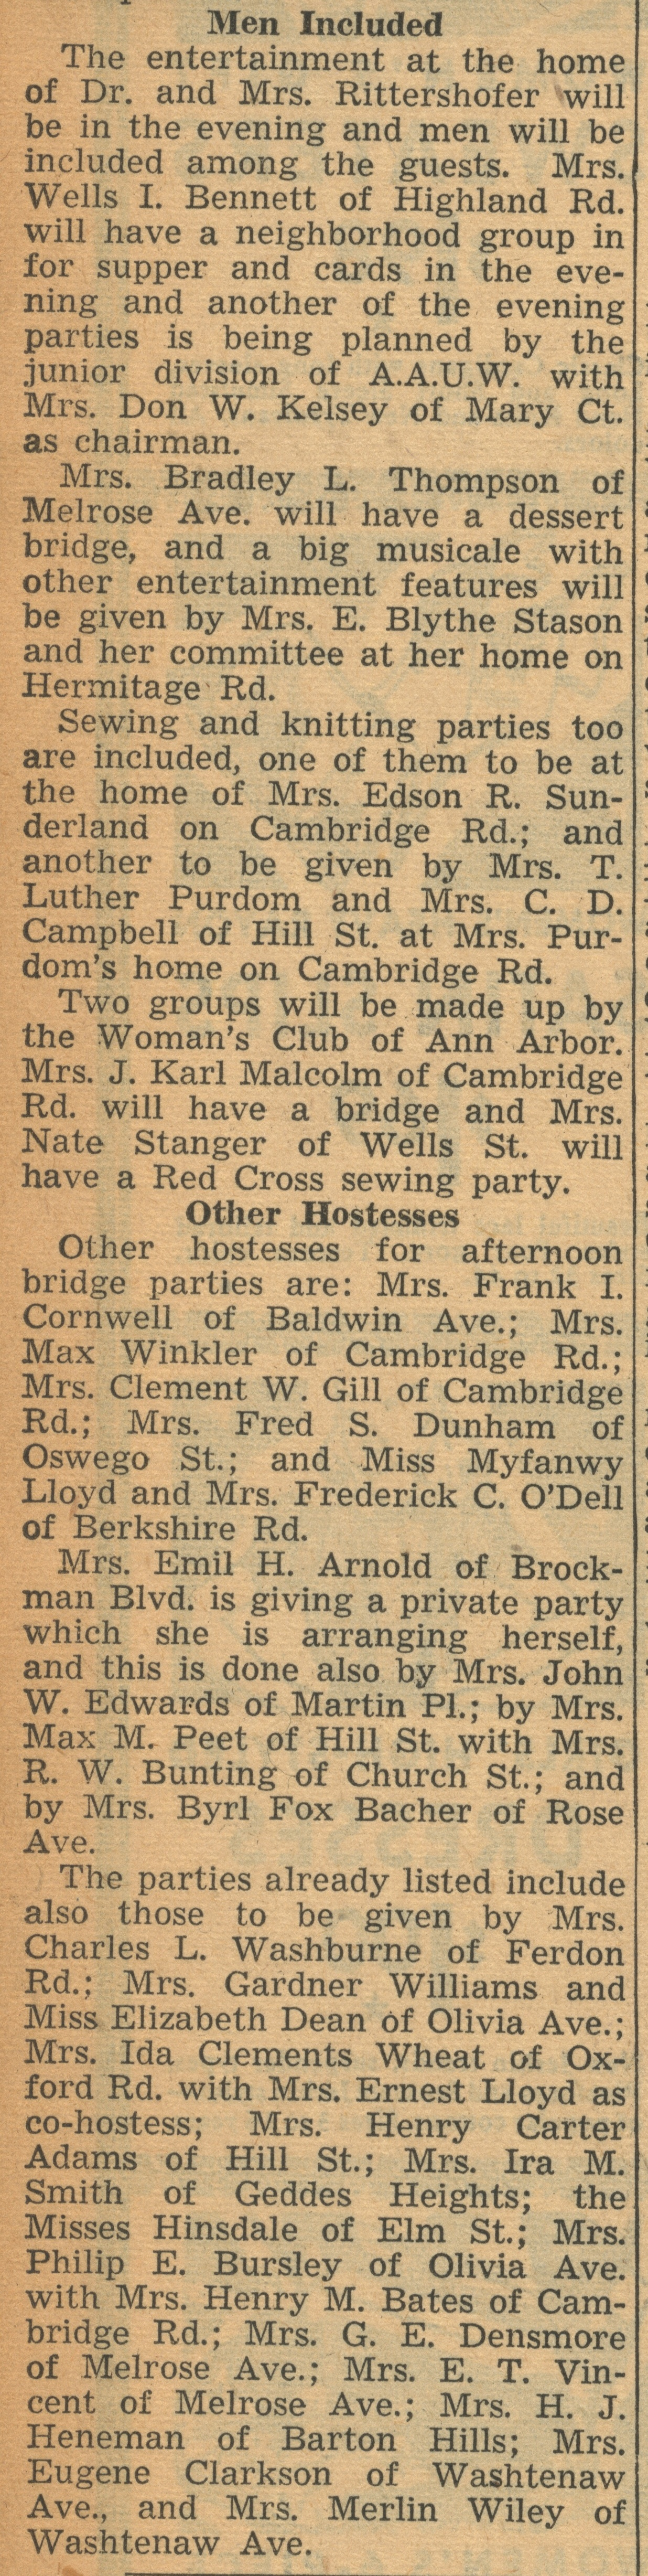 More Than 40 Parties Arranged For January 22 To Raise Funds For British War Relief: Mrs. Reeves Acts As General Chairman image